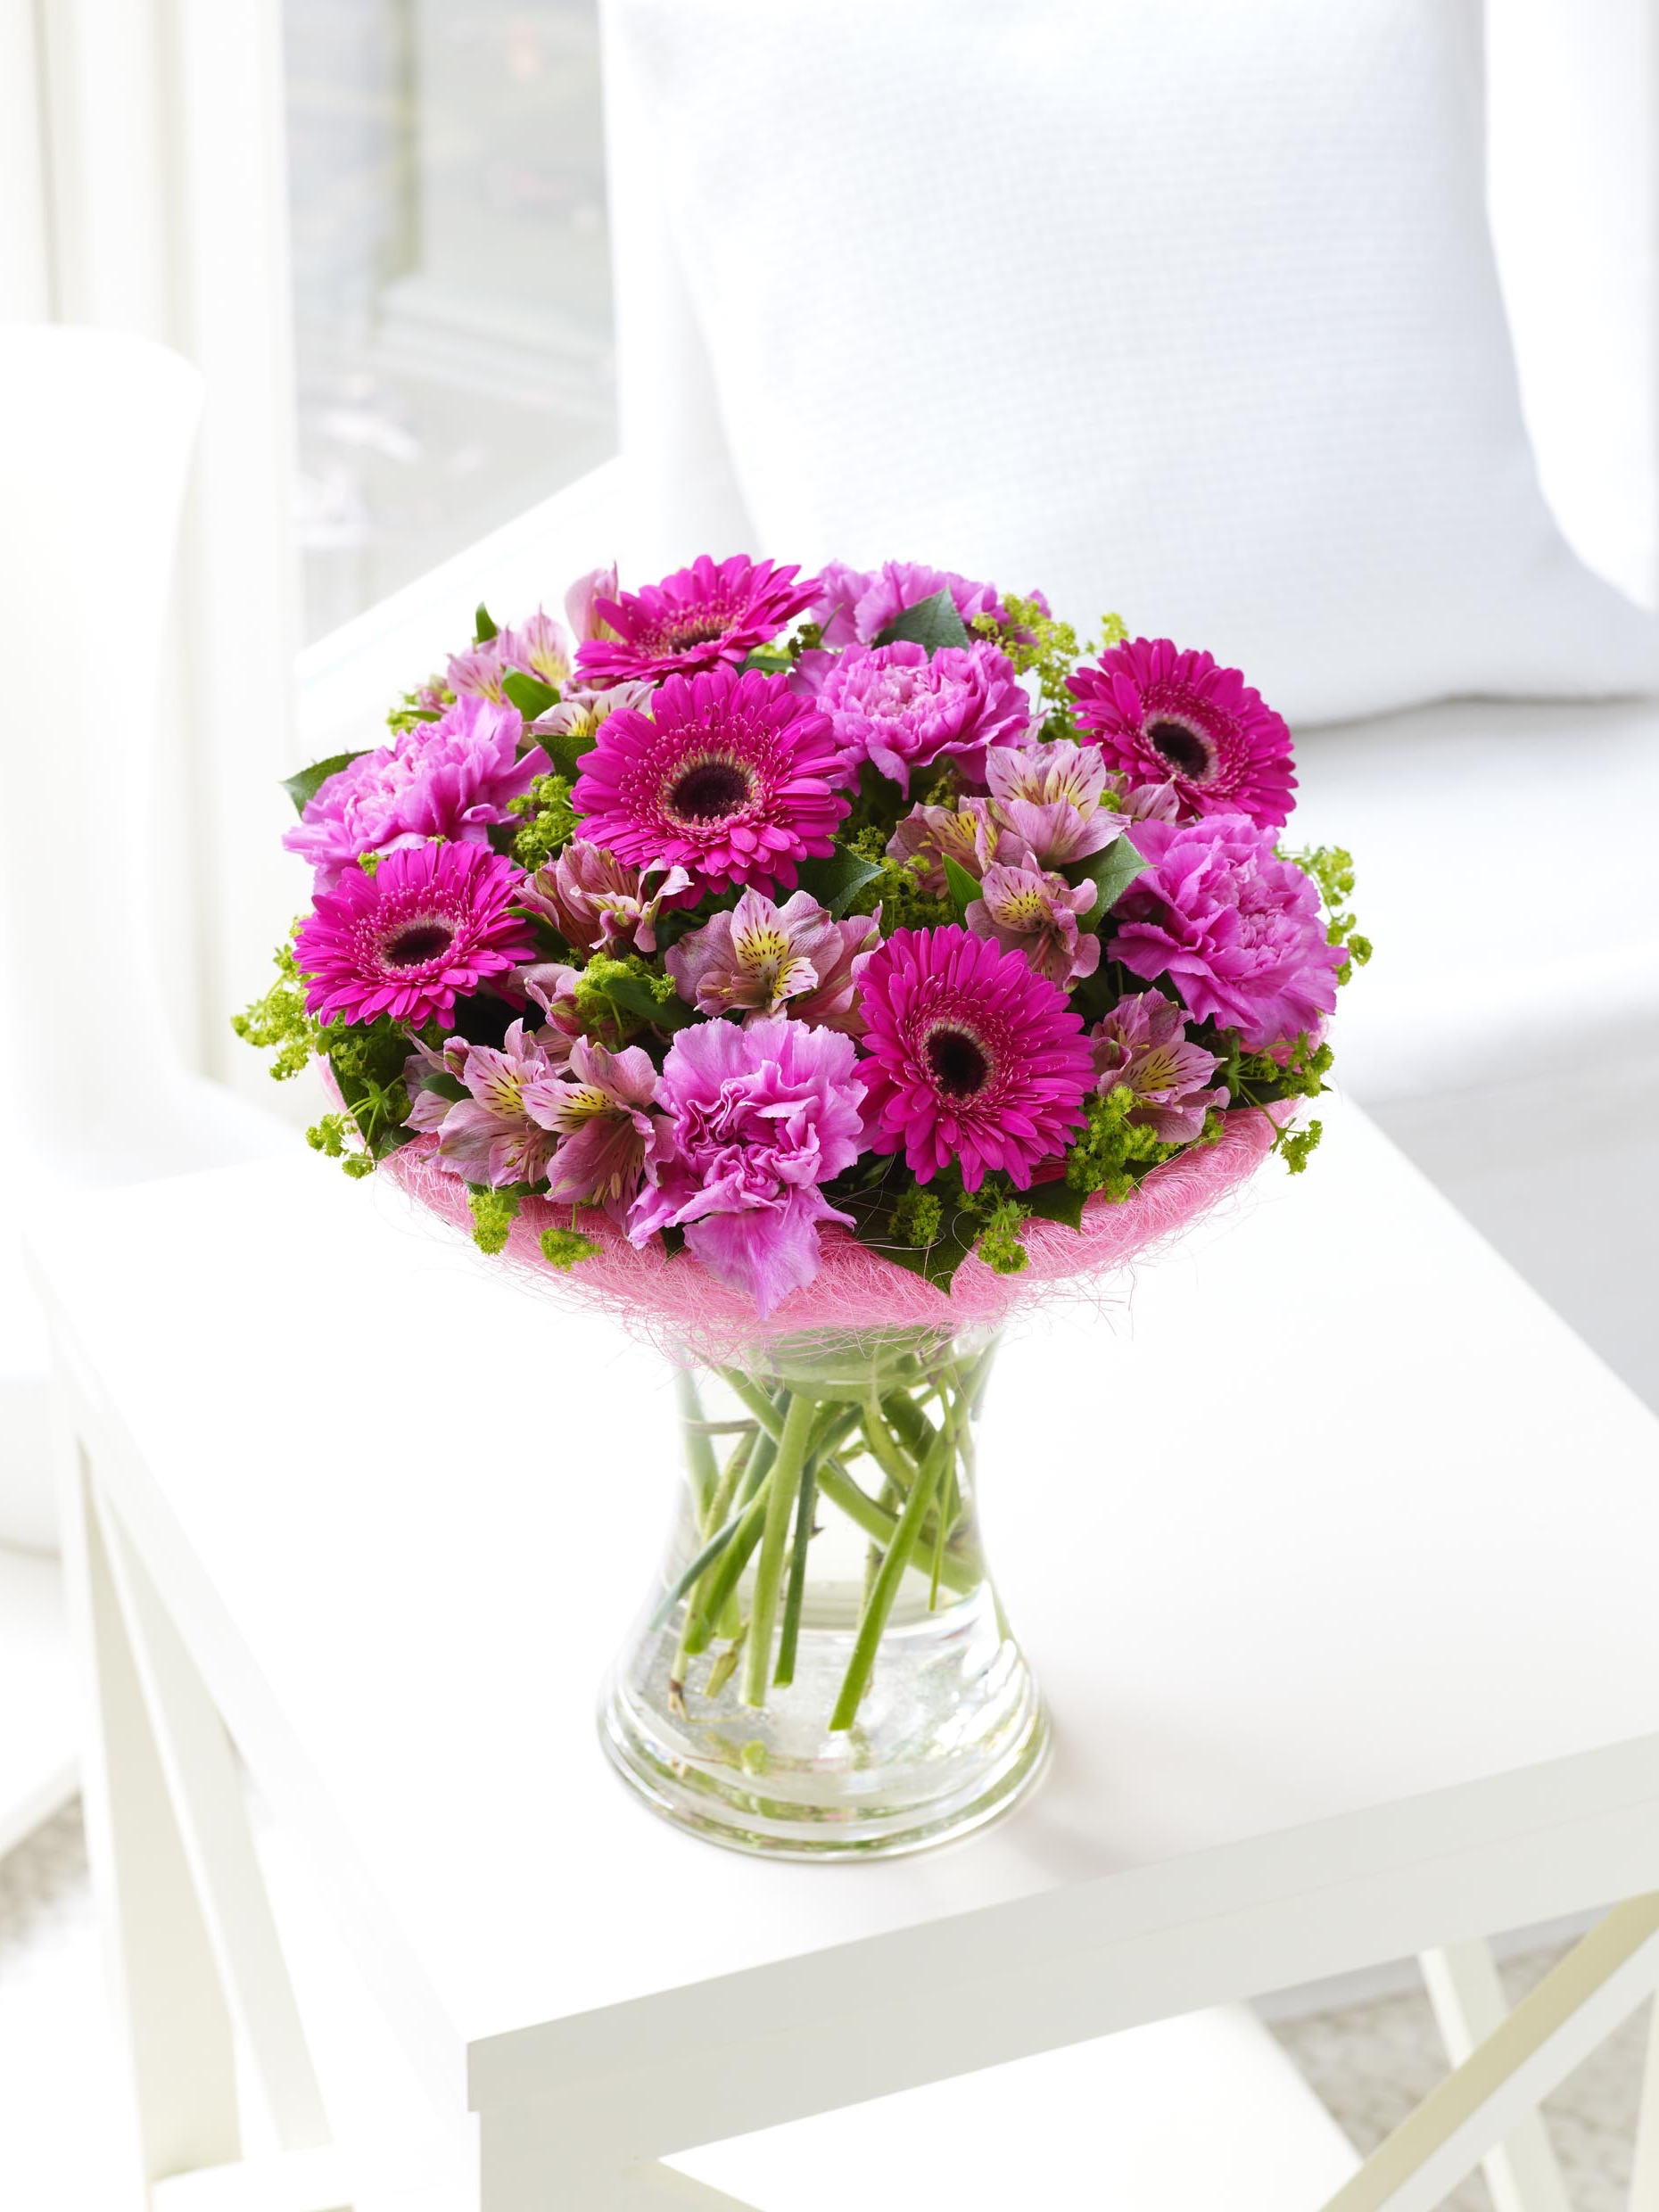 Pink Summer Flowers In Vase Wedding Centerpiece (Image 11 of 20)